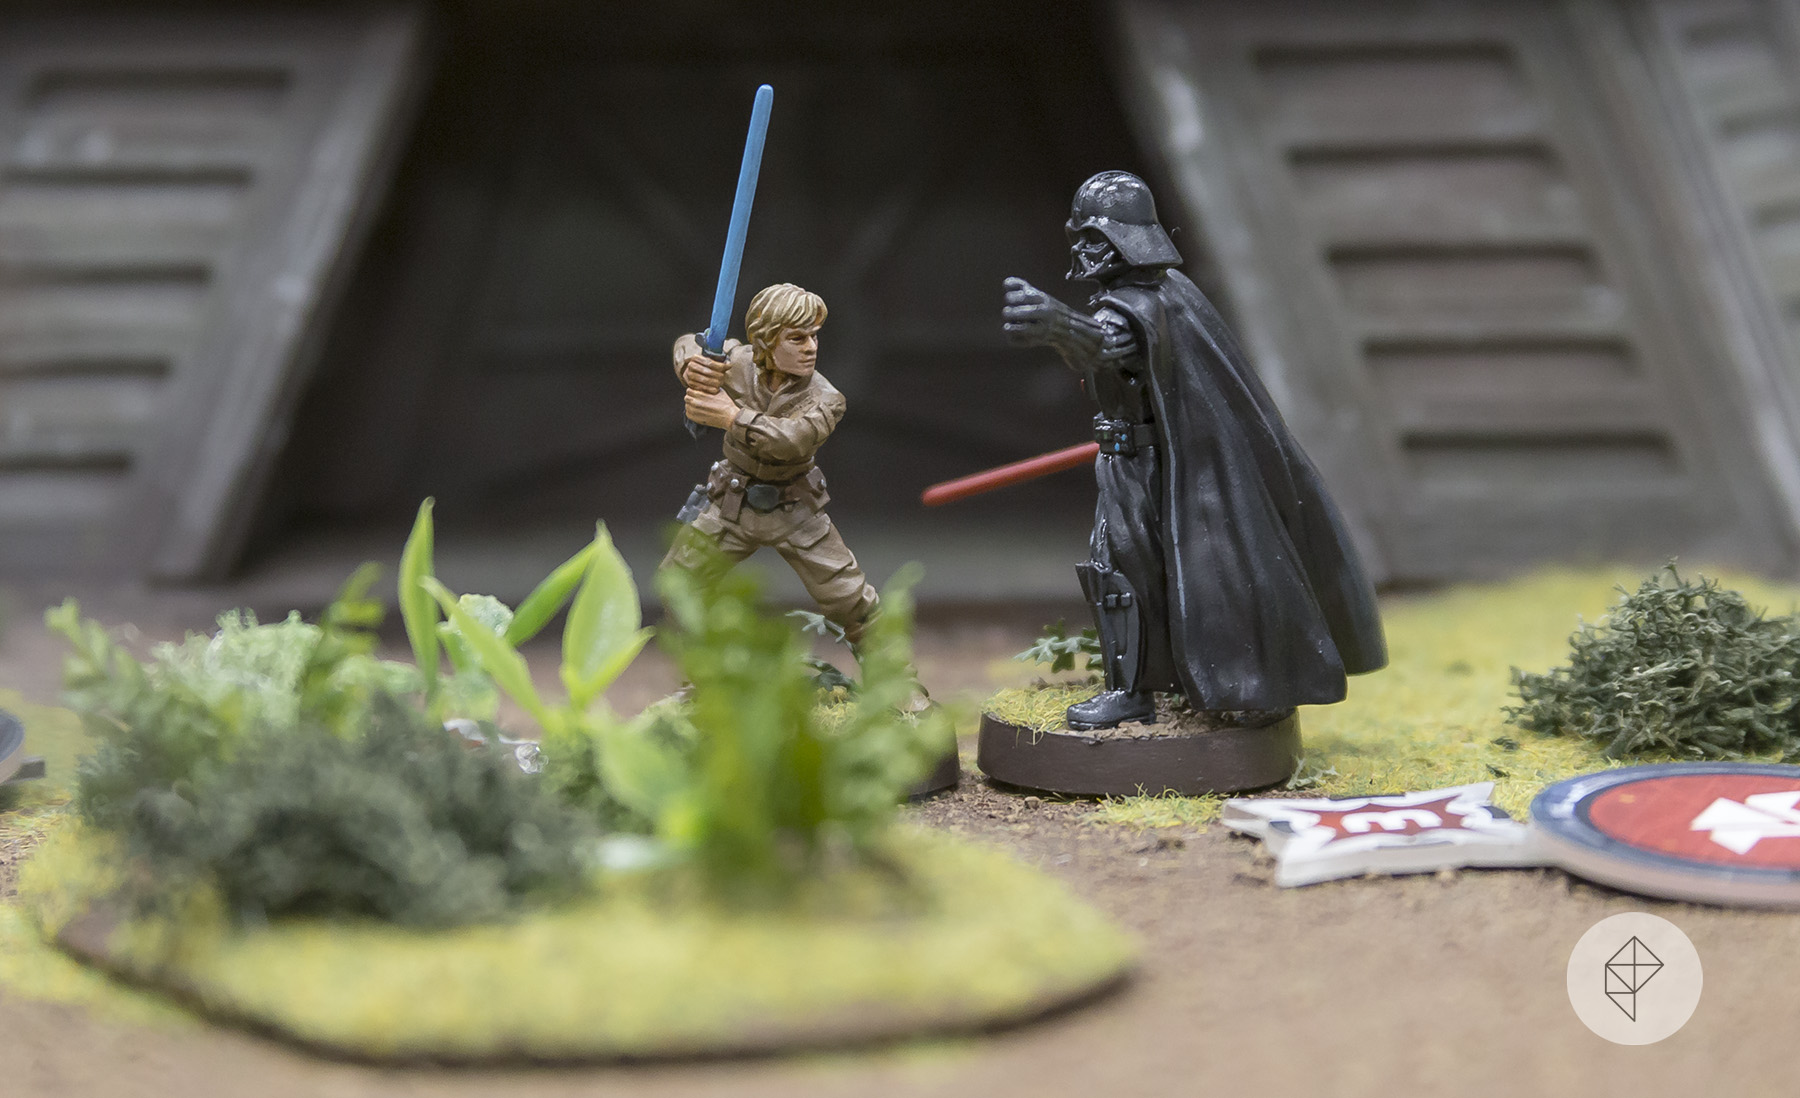 Star Wars: Legion stole the show at this year's Gen Con